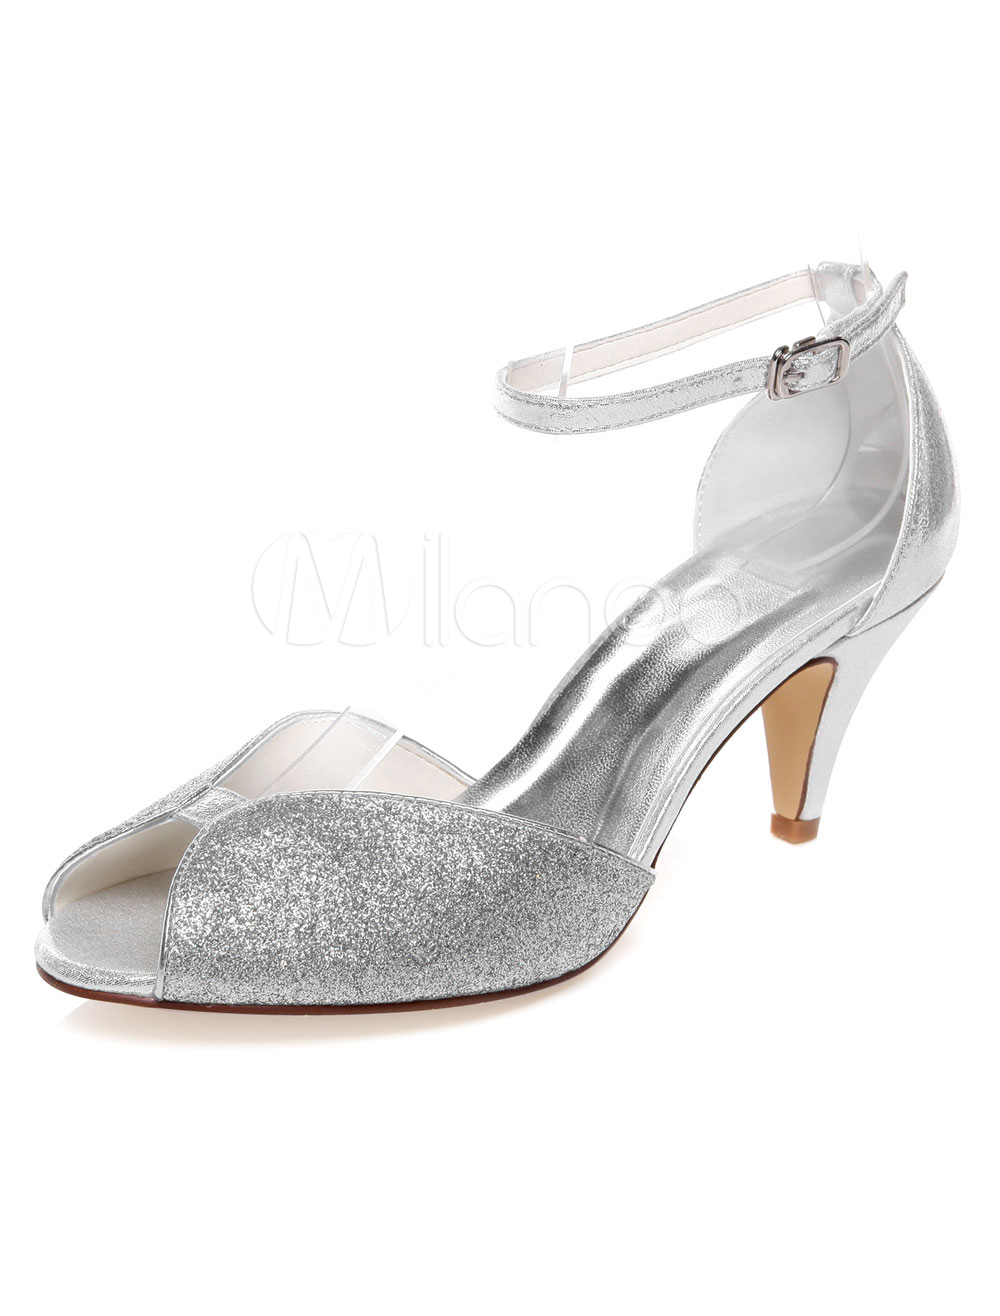 Buy Silver Bridal Pumps Sequins PU Wedding Sandals for Women for $56.99 in Milanoo store